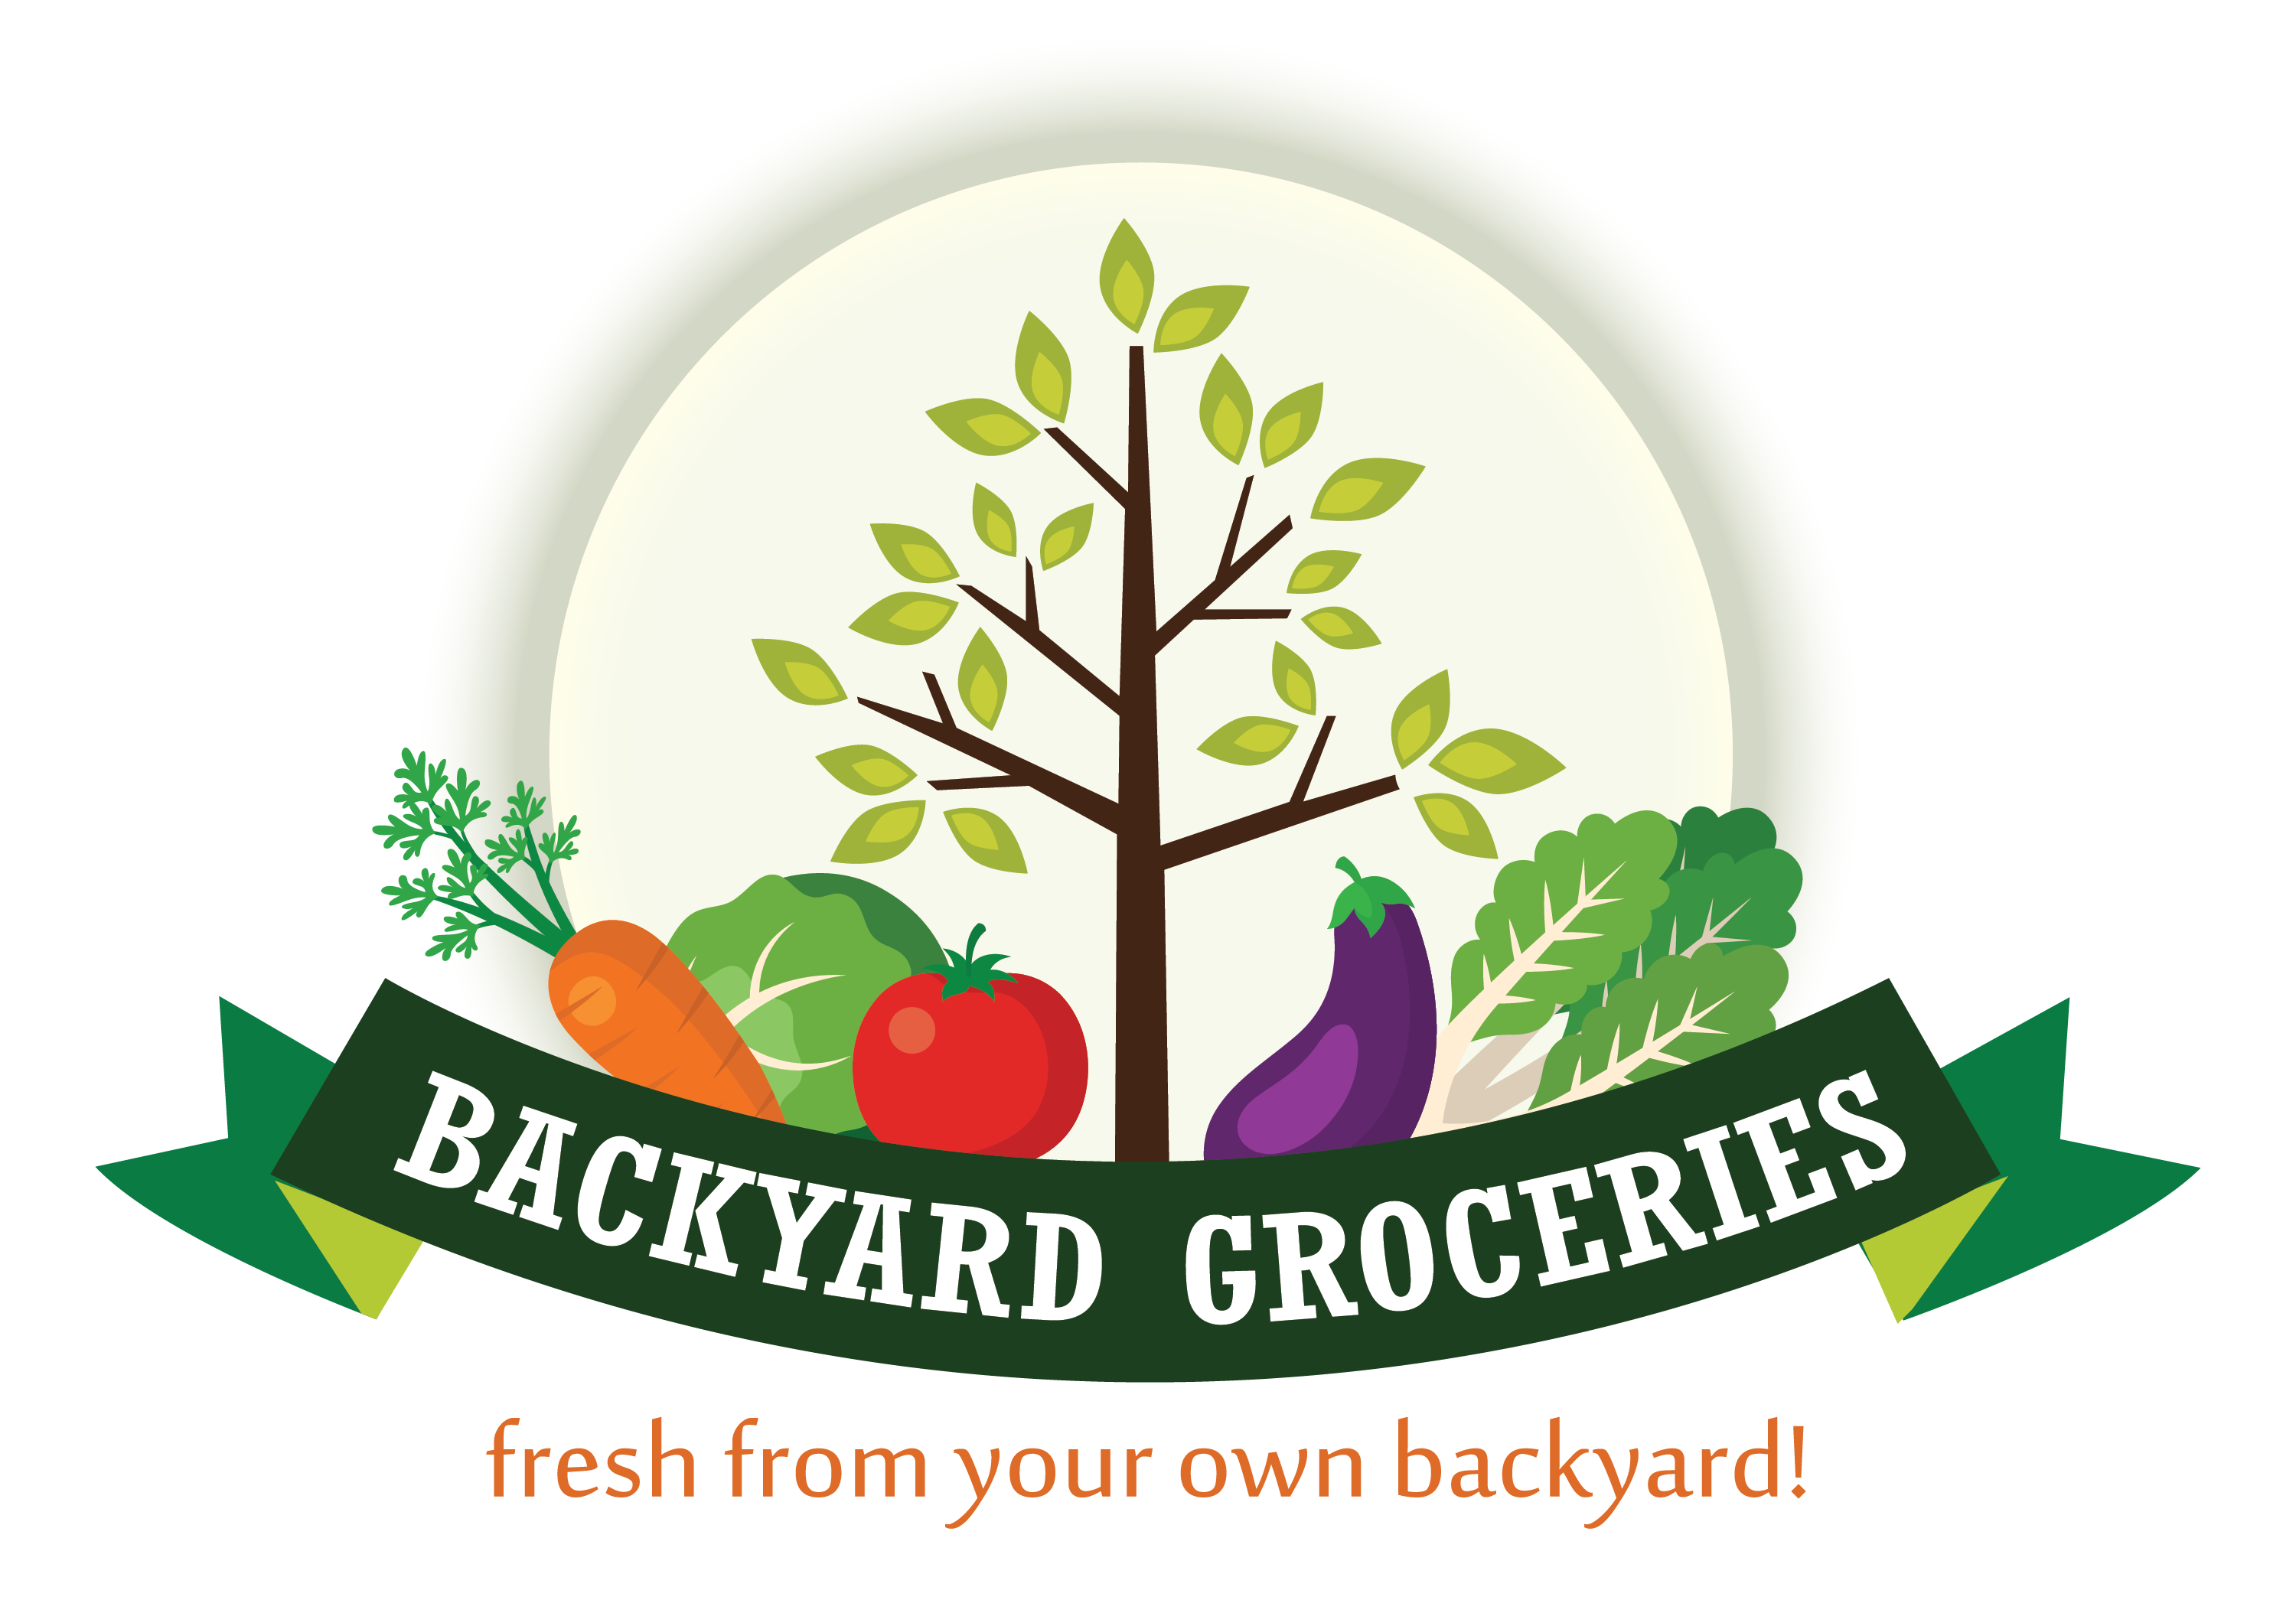 Backyard Groceries Logo 2017